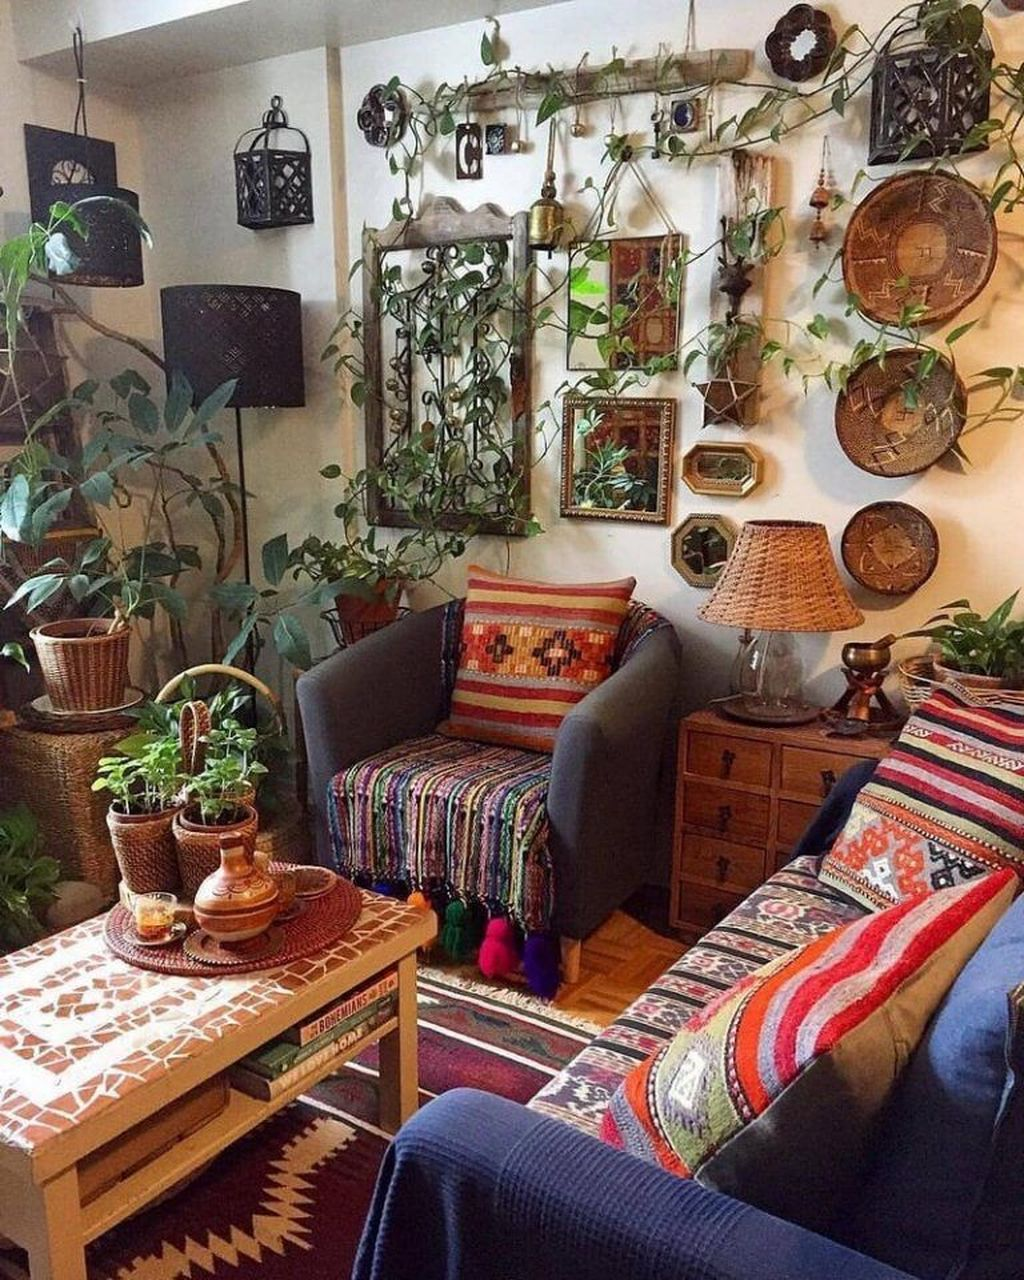 The Best Rustic Bohemian Living Room Decor Ideas 20